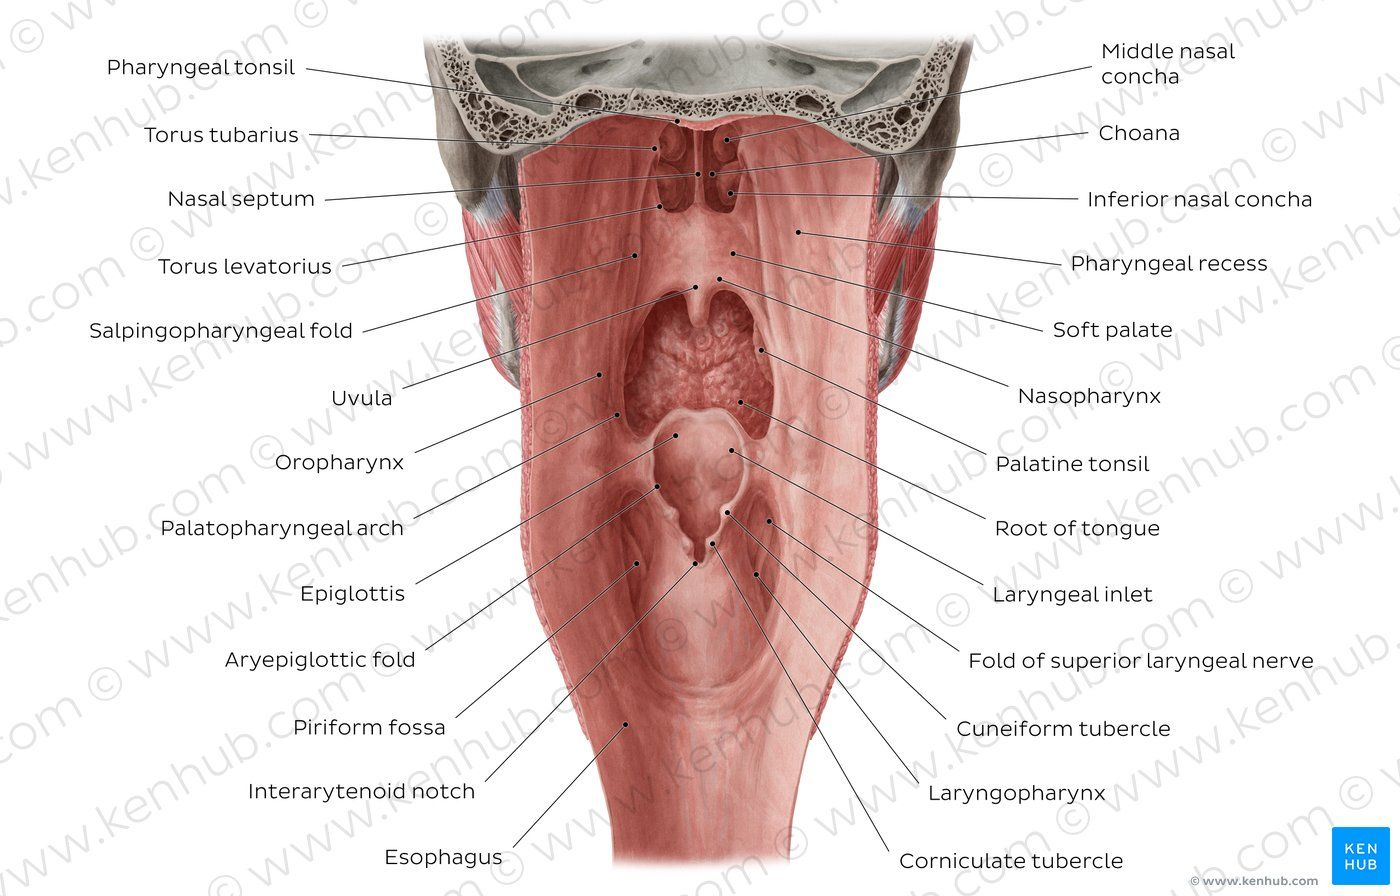 Pharyngeal Tonsils Pictures Human Body Anatomy Human Body